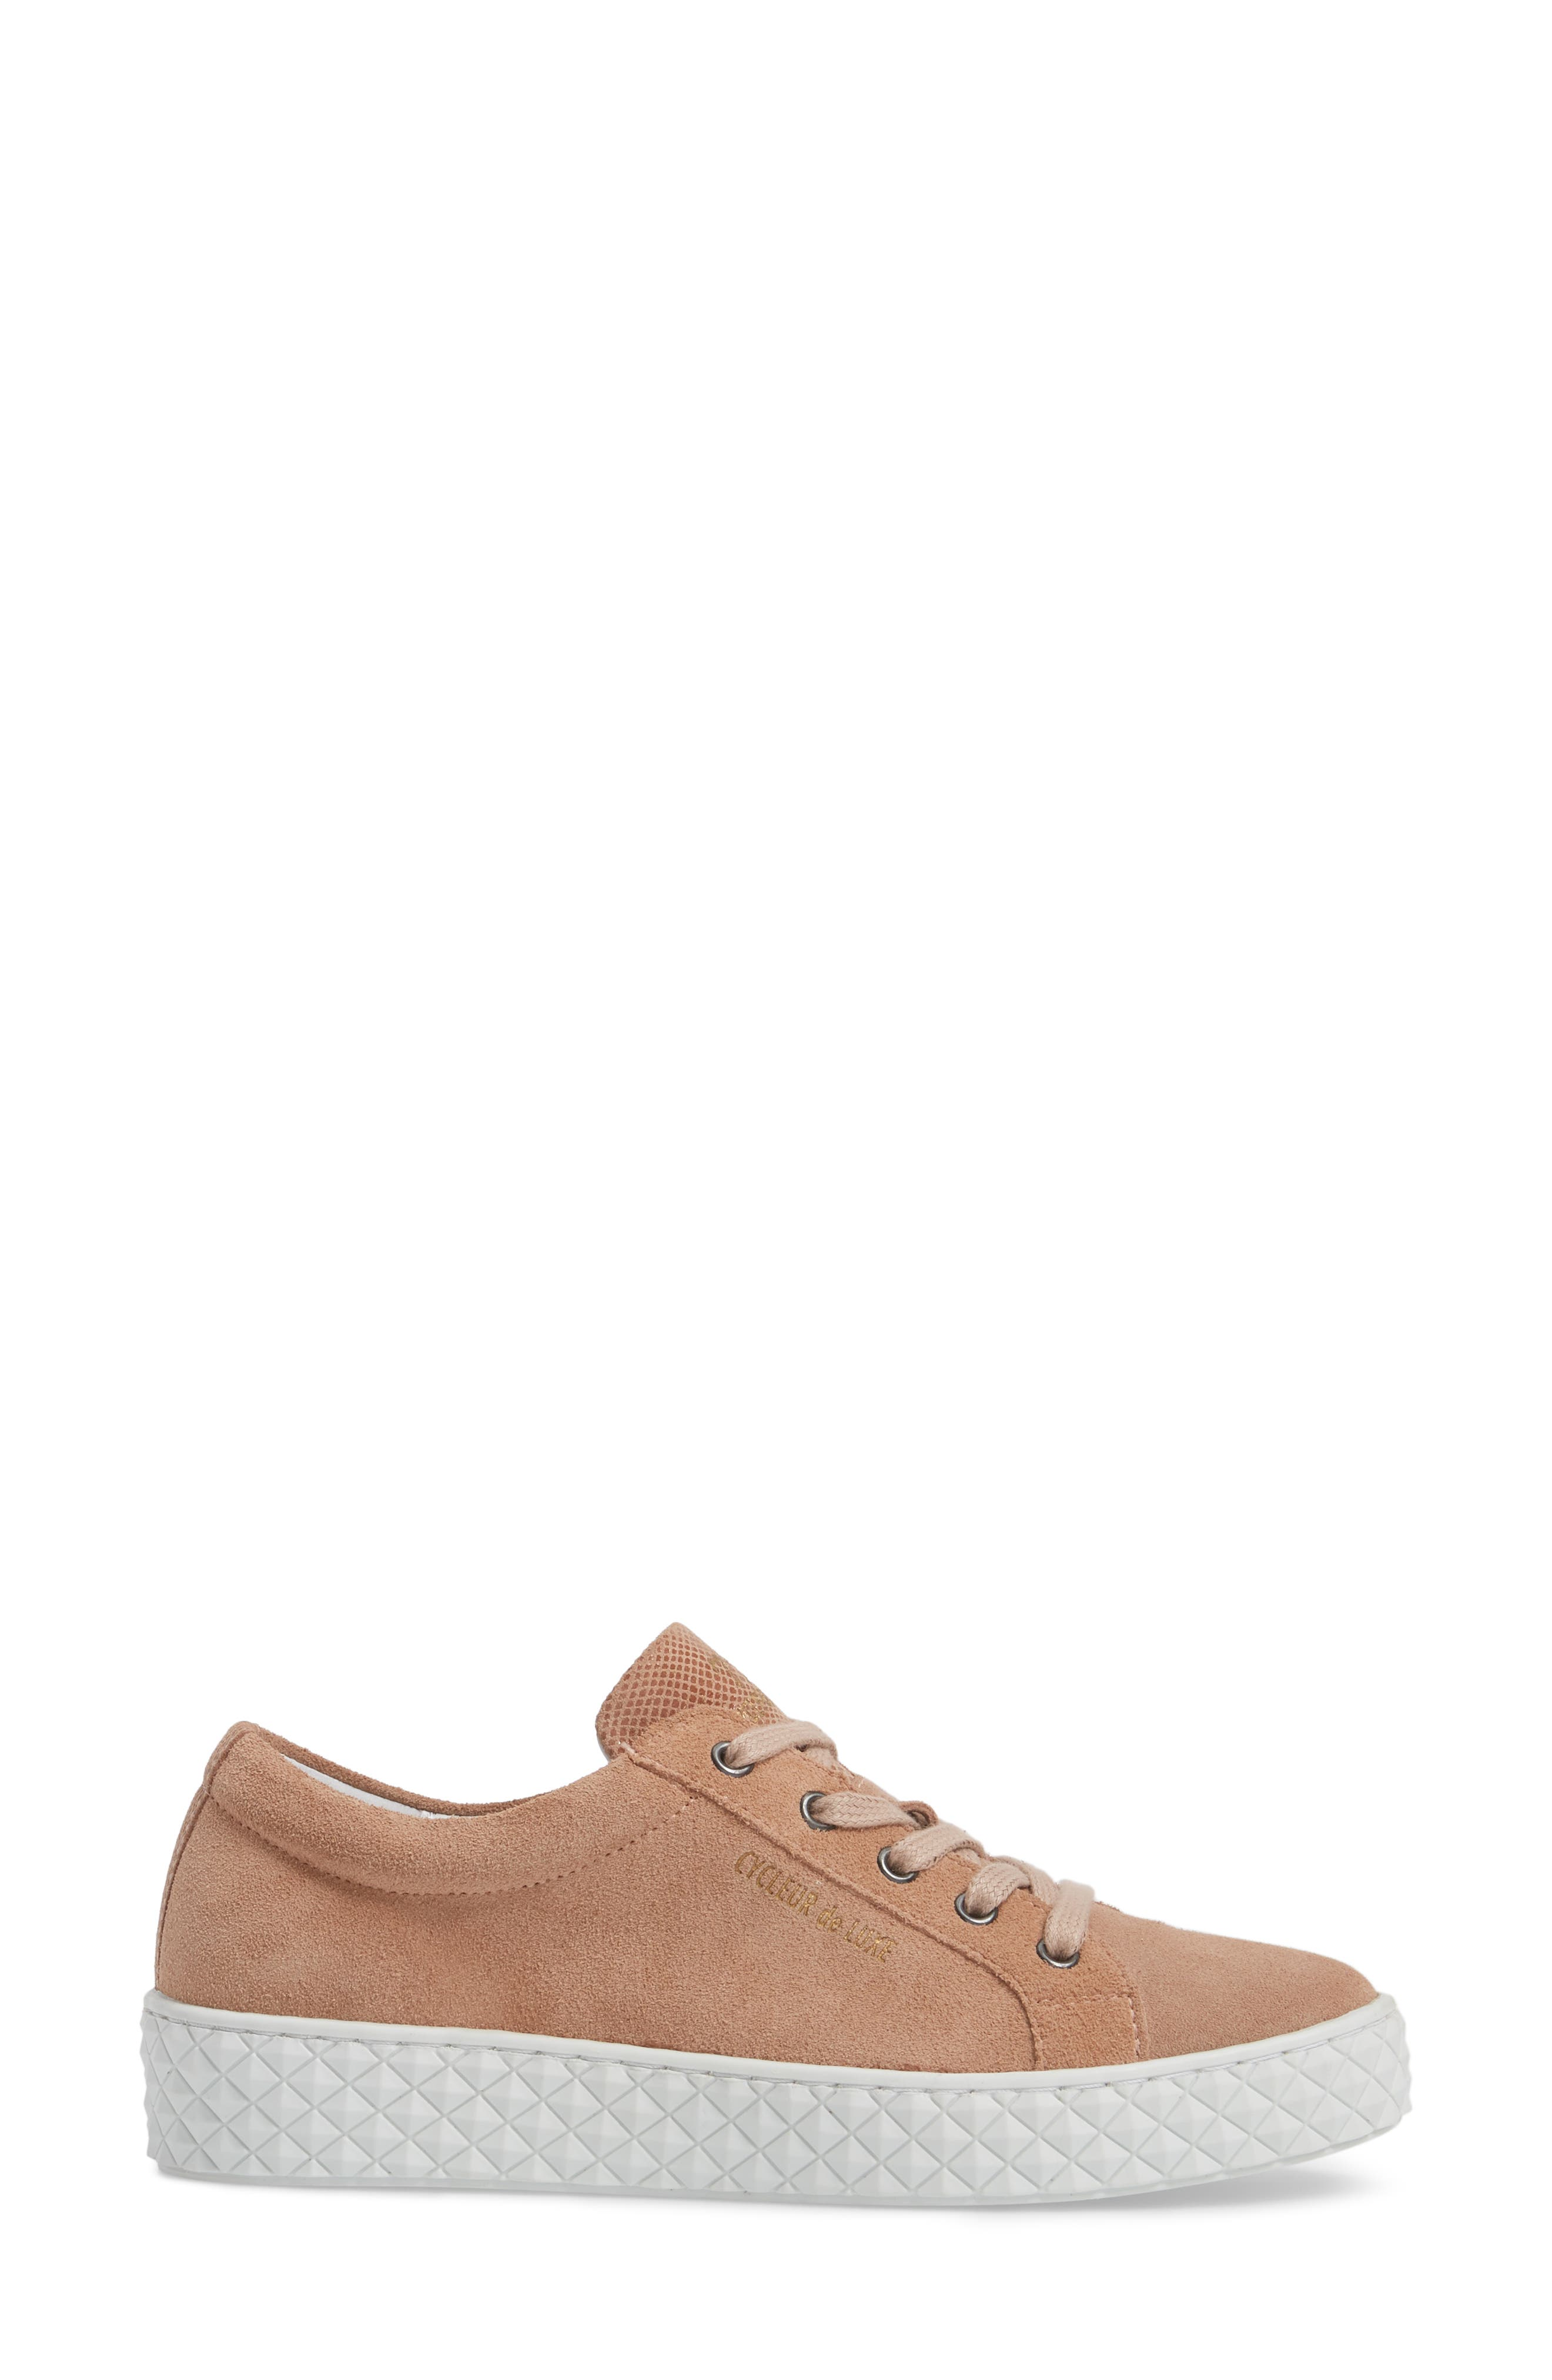 Acton II Sneaker,                             Alternate thumbnail 3, color,                             Dark Cipria Suede